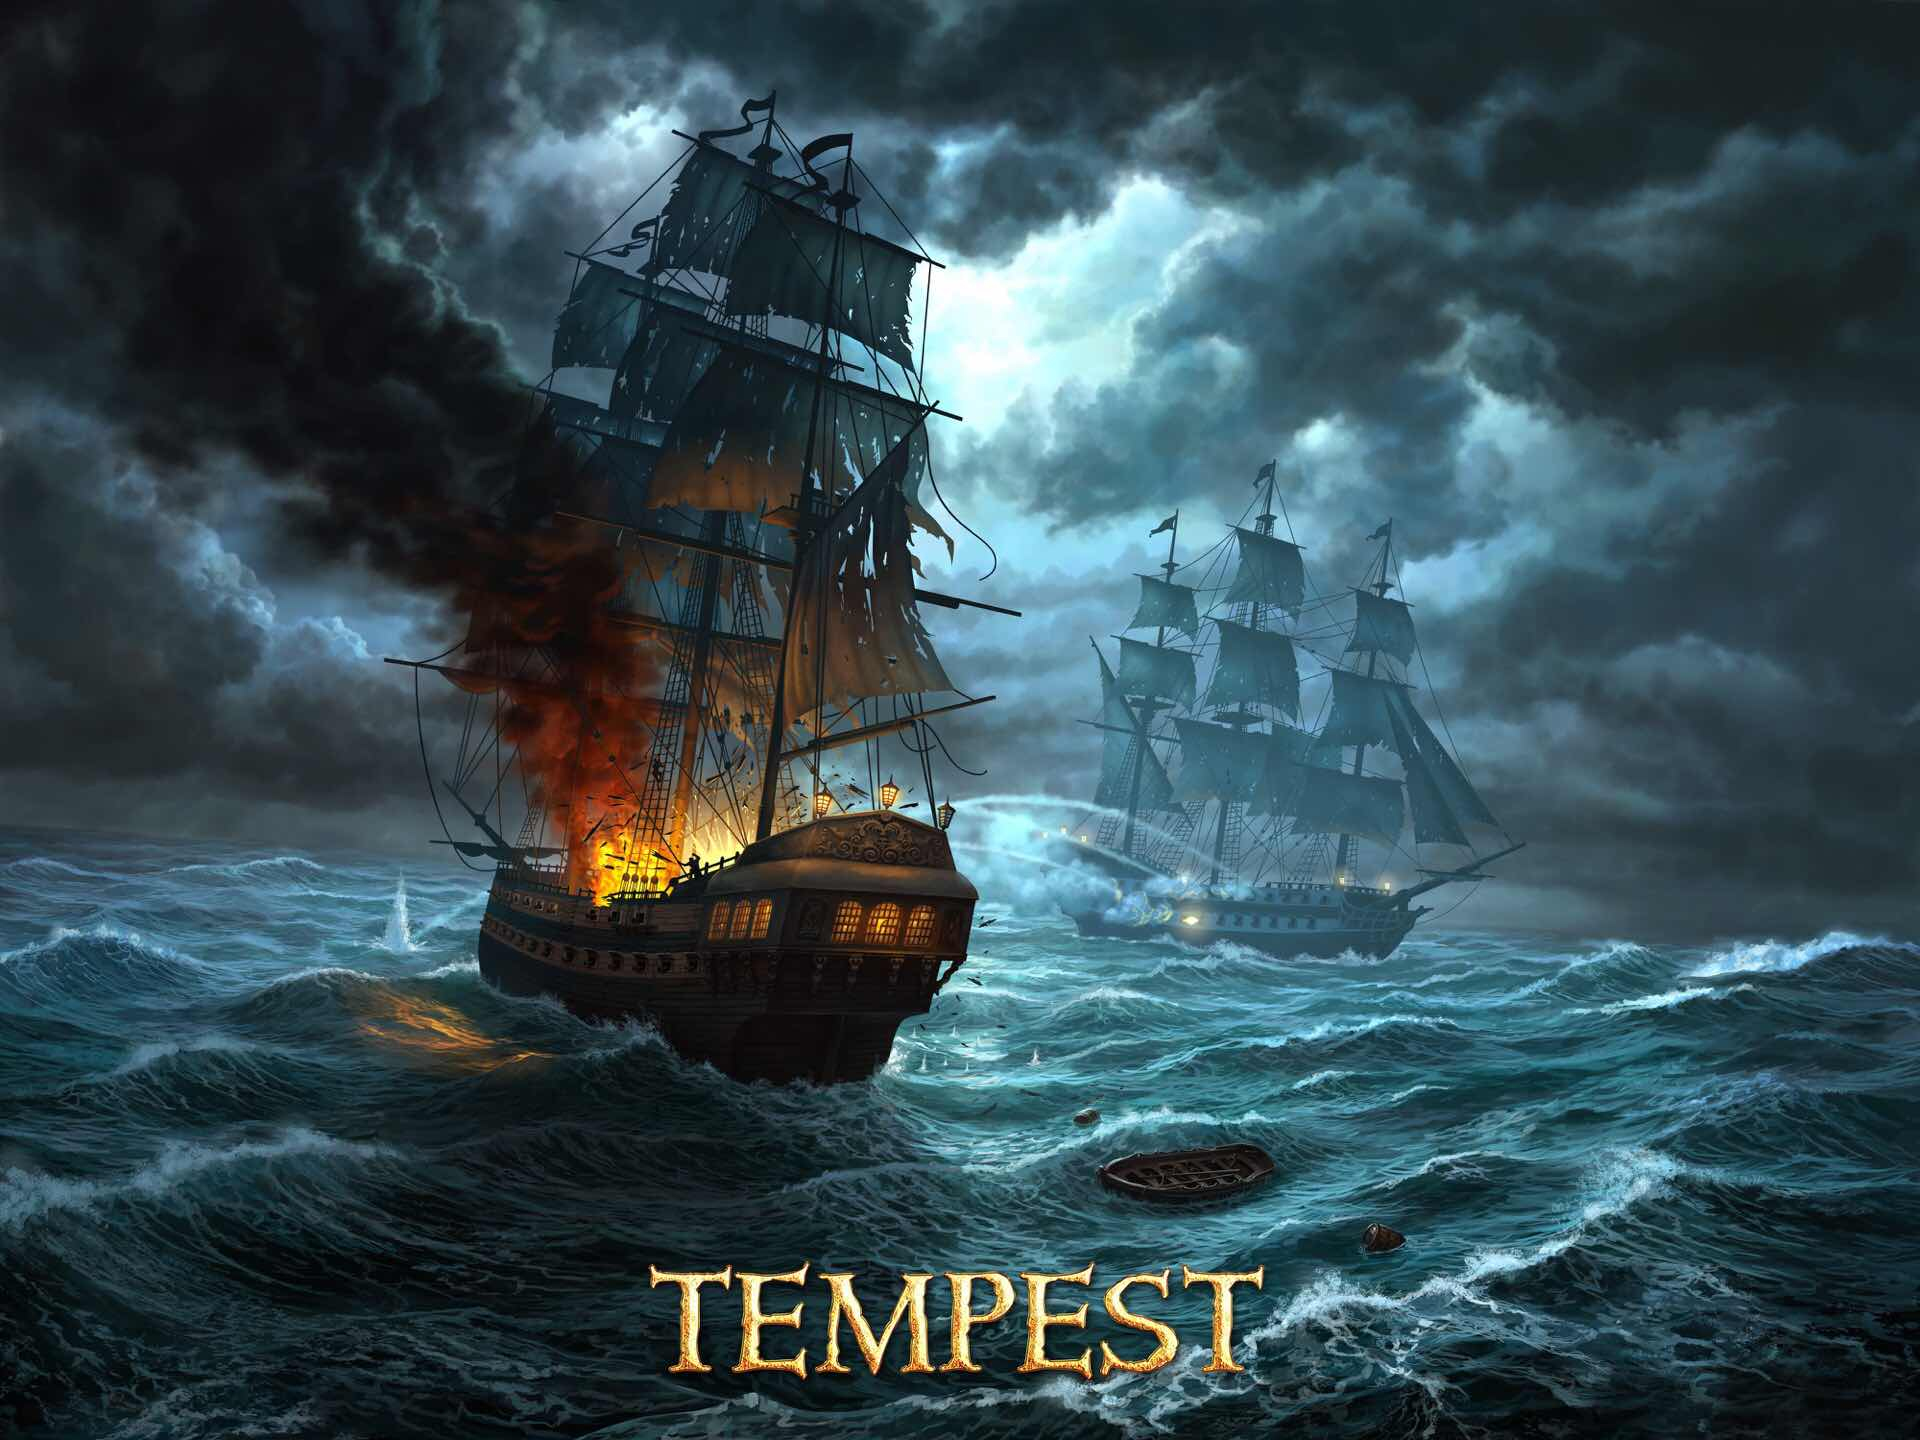 tempest-pirate-action-rpg-for-ios